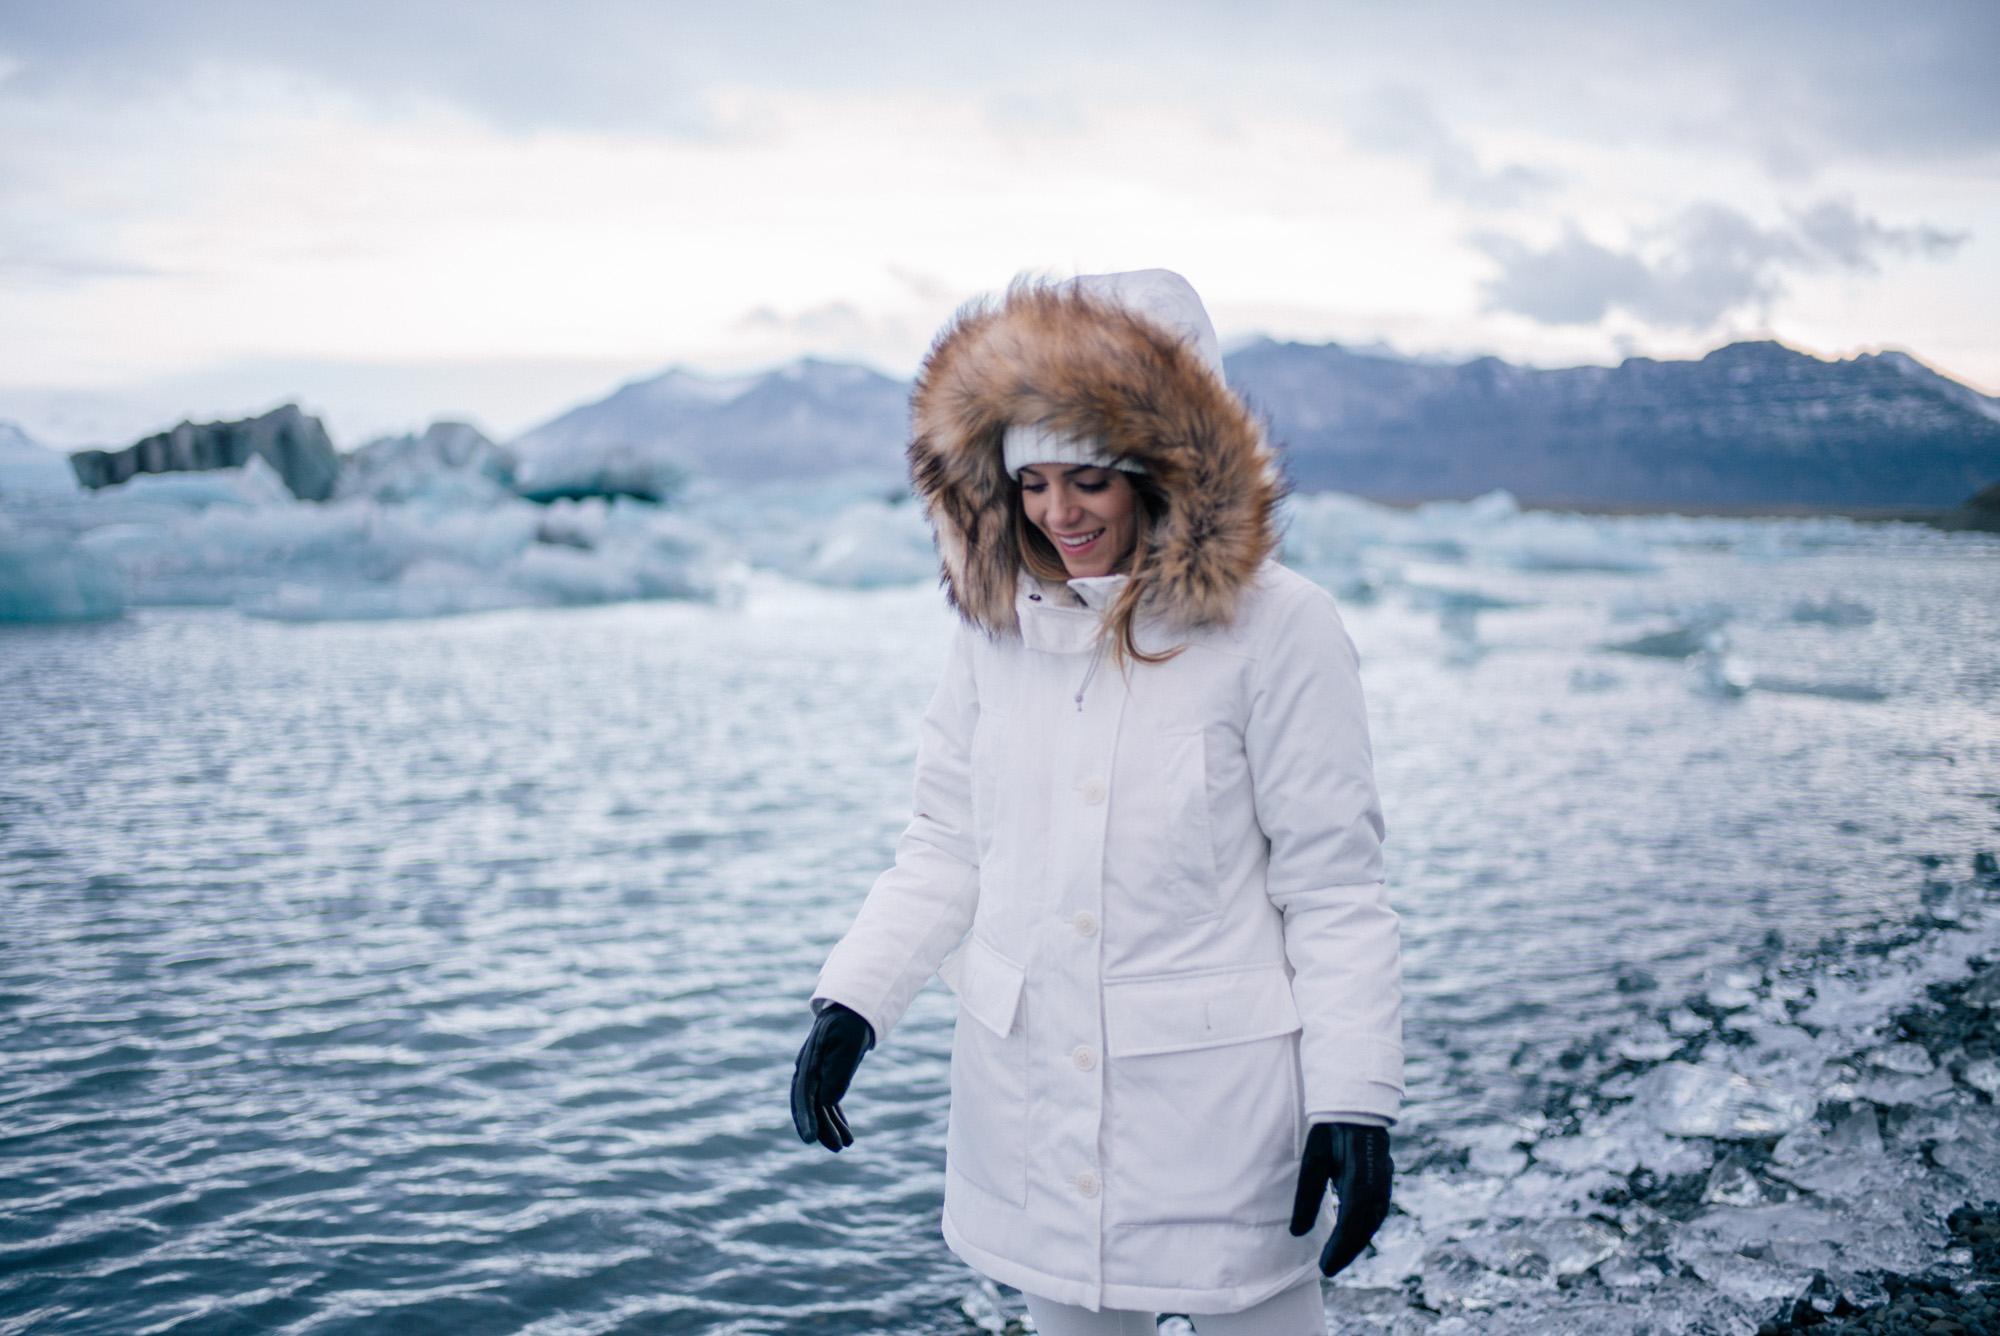 gmg-iceland-itinerary-winter-1006038